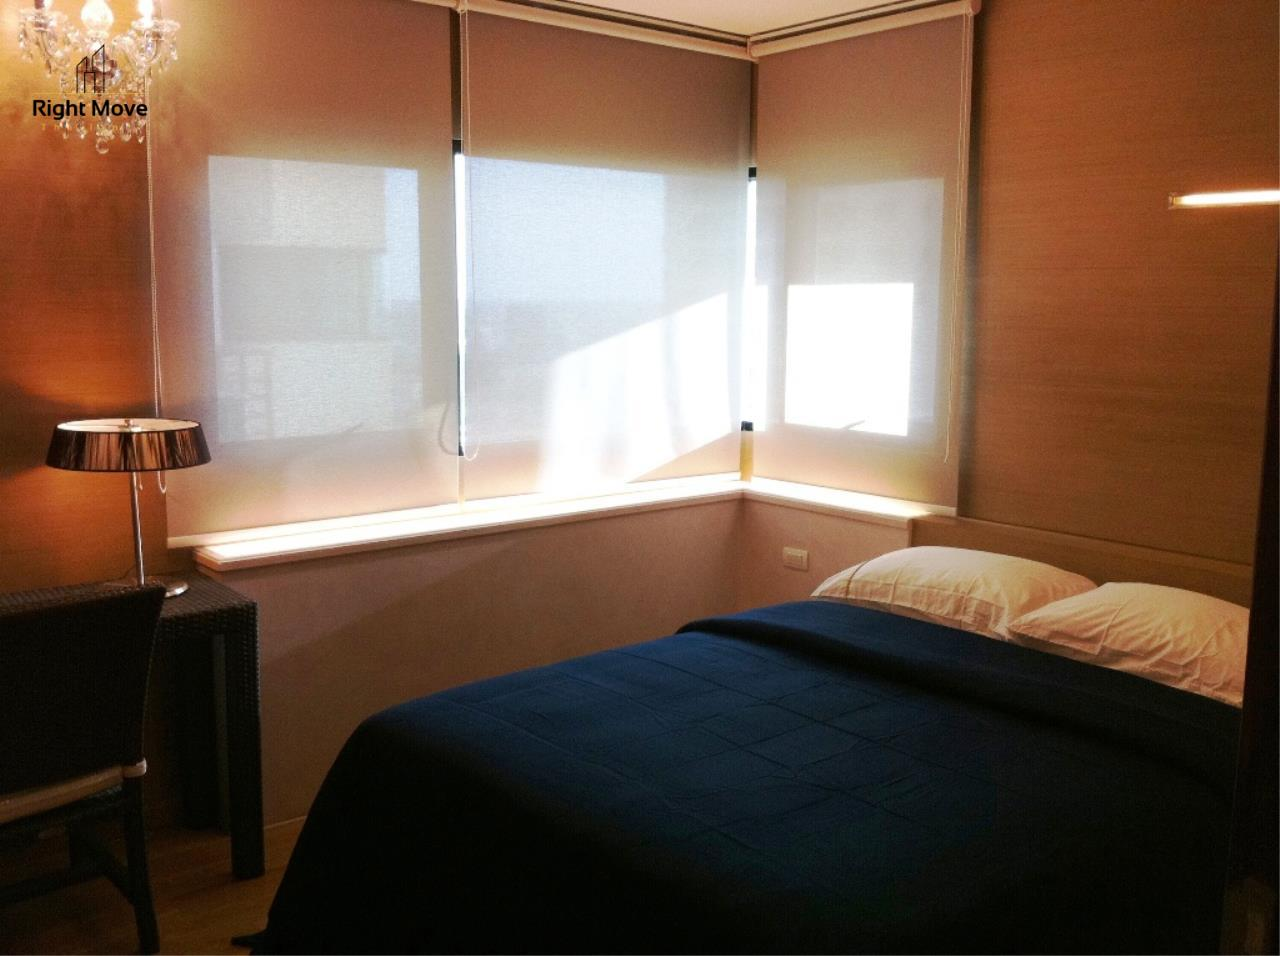 Right Move Thailand Agency's CS2423 Sathorn Garden For sale 12,000,000 THB 1 Bedroom 78.70 Sqm  5